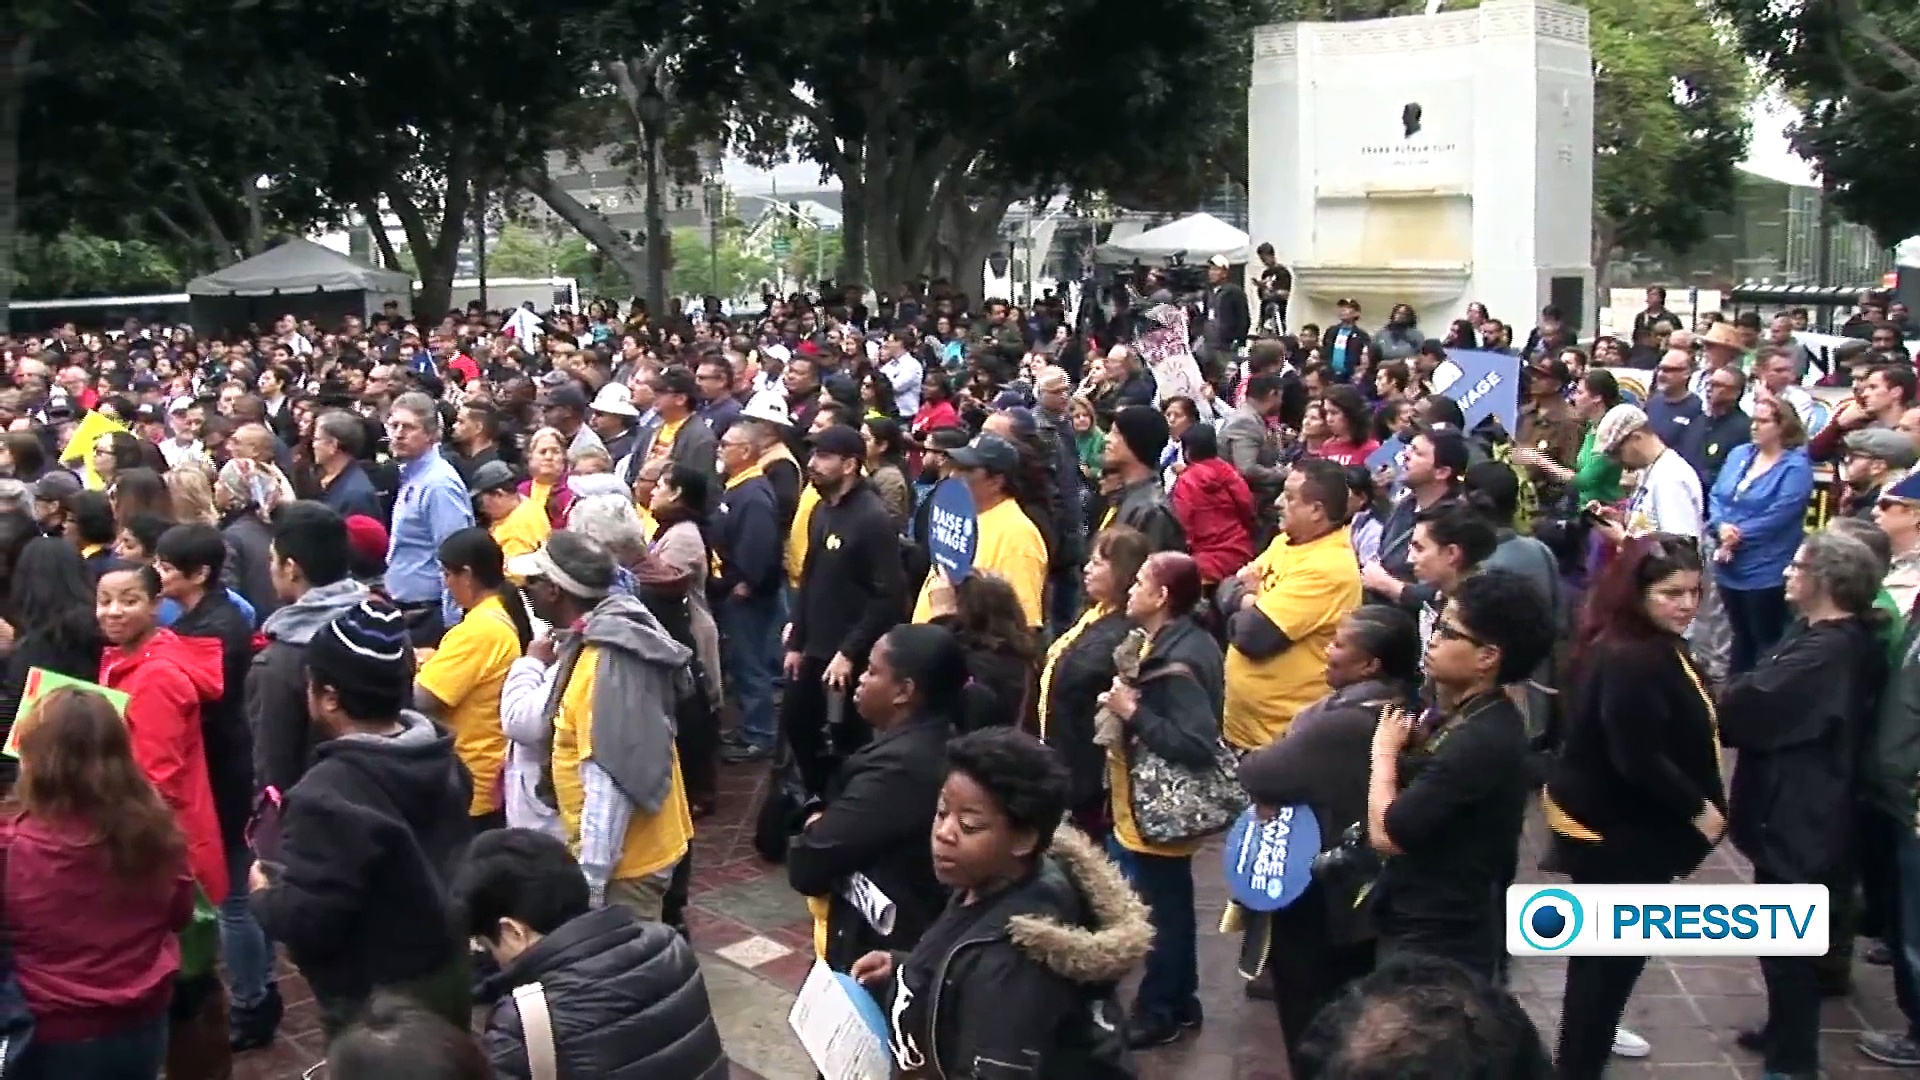 Workers in Los Angeles call for increase in minimum wage